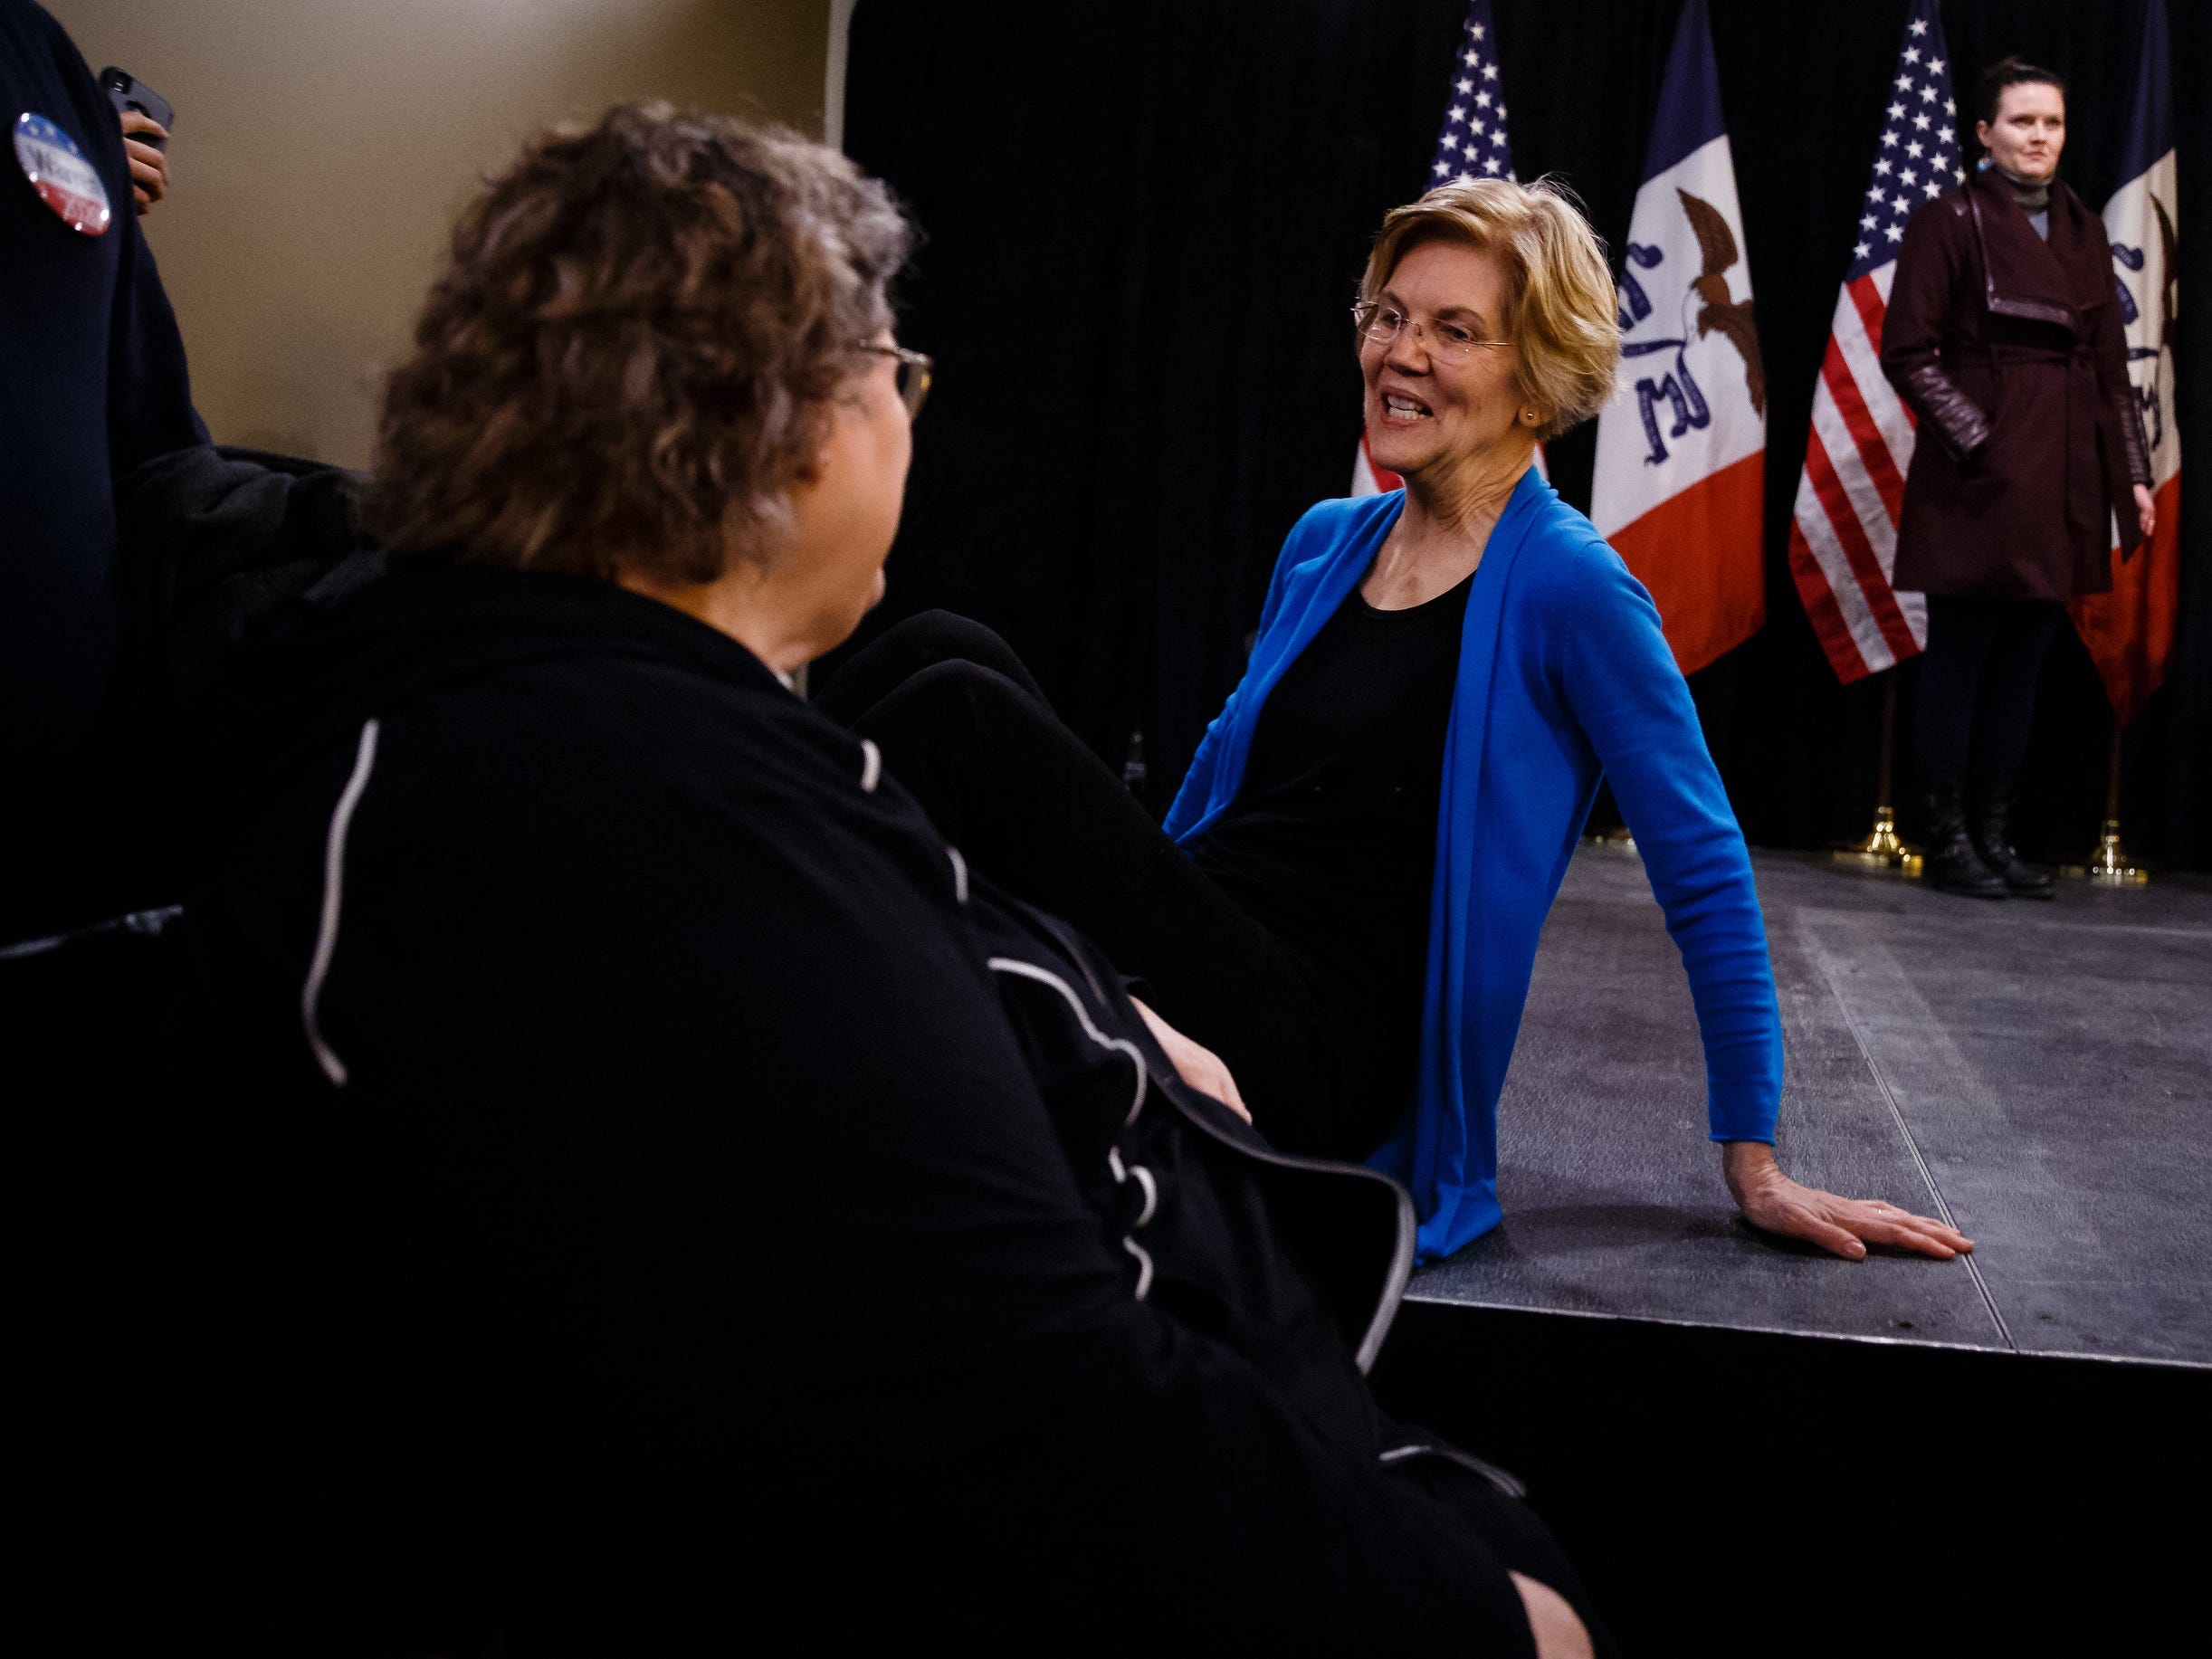 Sen. Elizabeth Warren crouches down to talk to a woman in a wheelchair during an event on her first trip through Iowa as a possible 2020 presidential candidate on Friday, Jan. 4, 2019, in Council Bluffs.